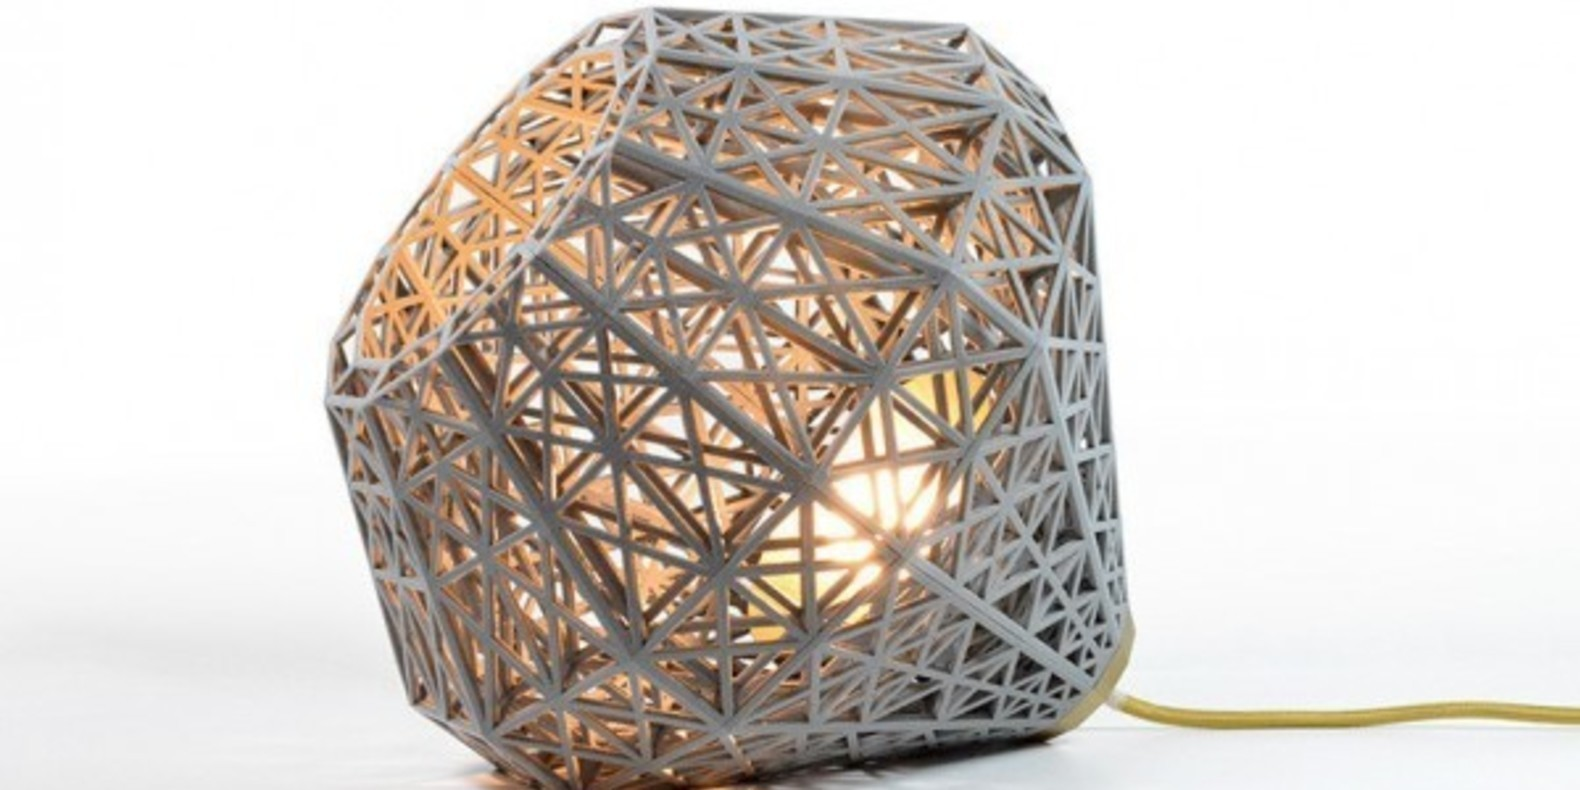 Top 15 lamps printed in 3D.